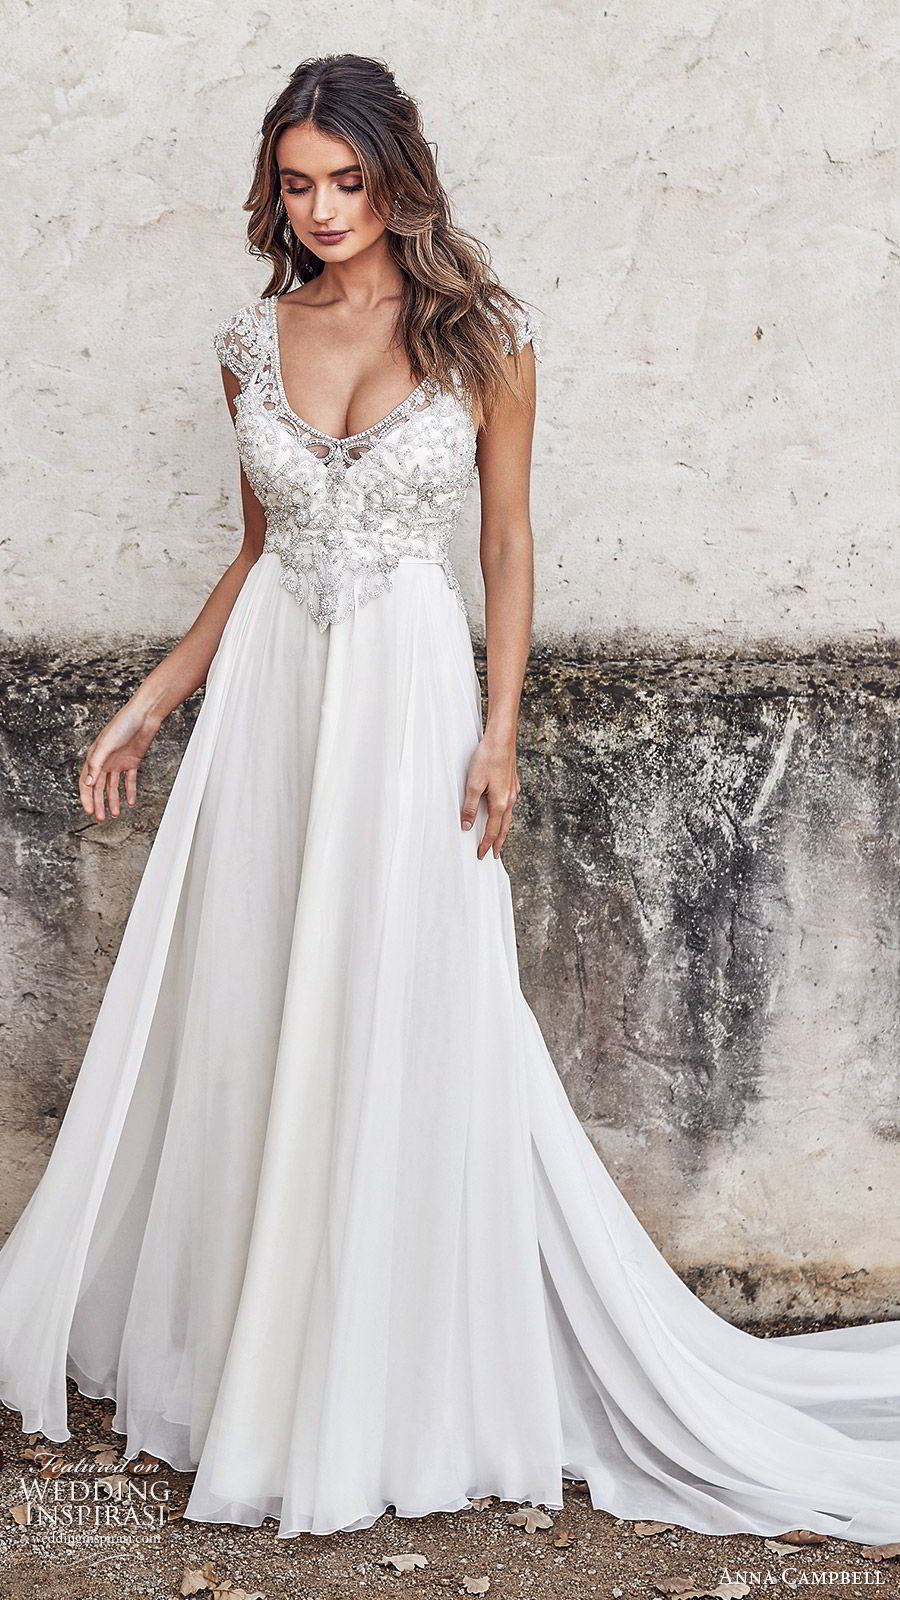 anna campbell 2020 bridal illusion cap sleeves scoop neck heavily embellished bodice a line ball gown wedding dress (3) glitzy glam v back chapel train mv